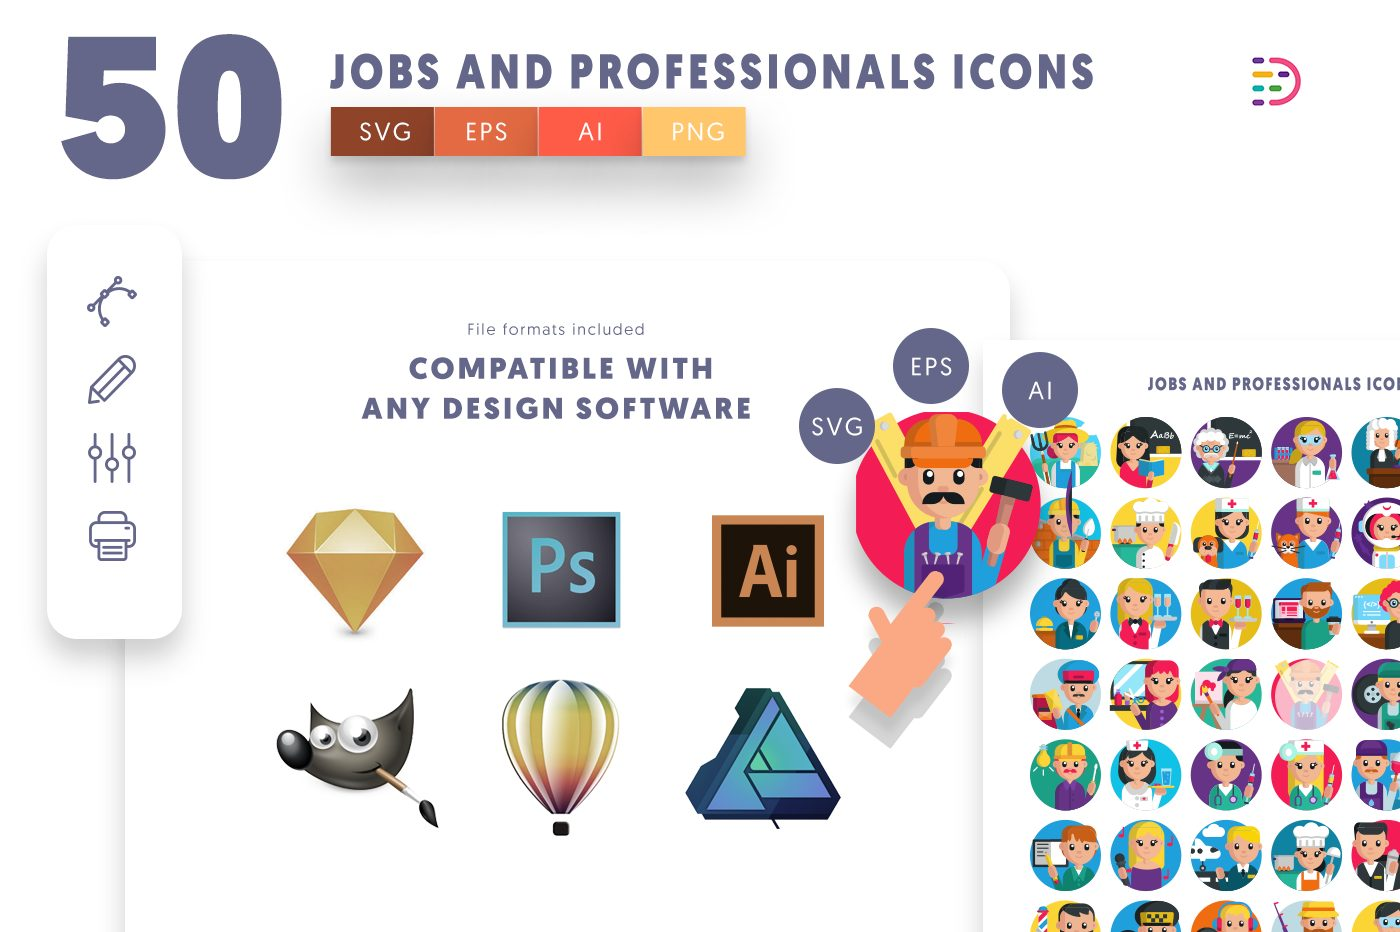 full vector 50 Job and Professionals Icons EPS, SVG, PNG